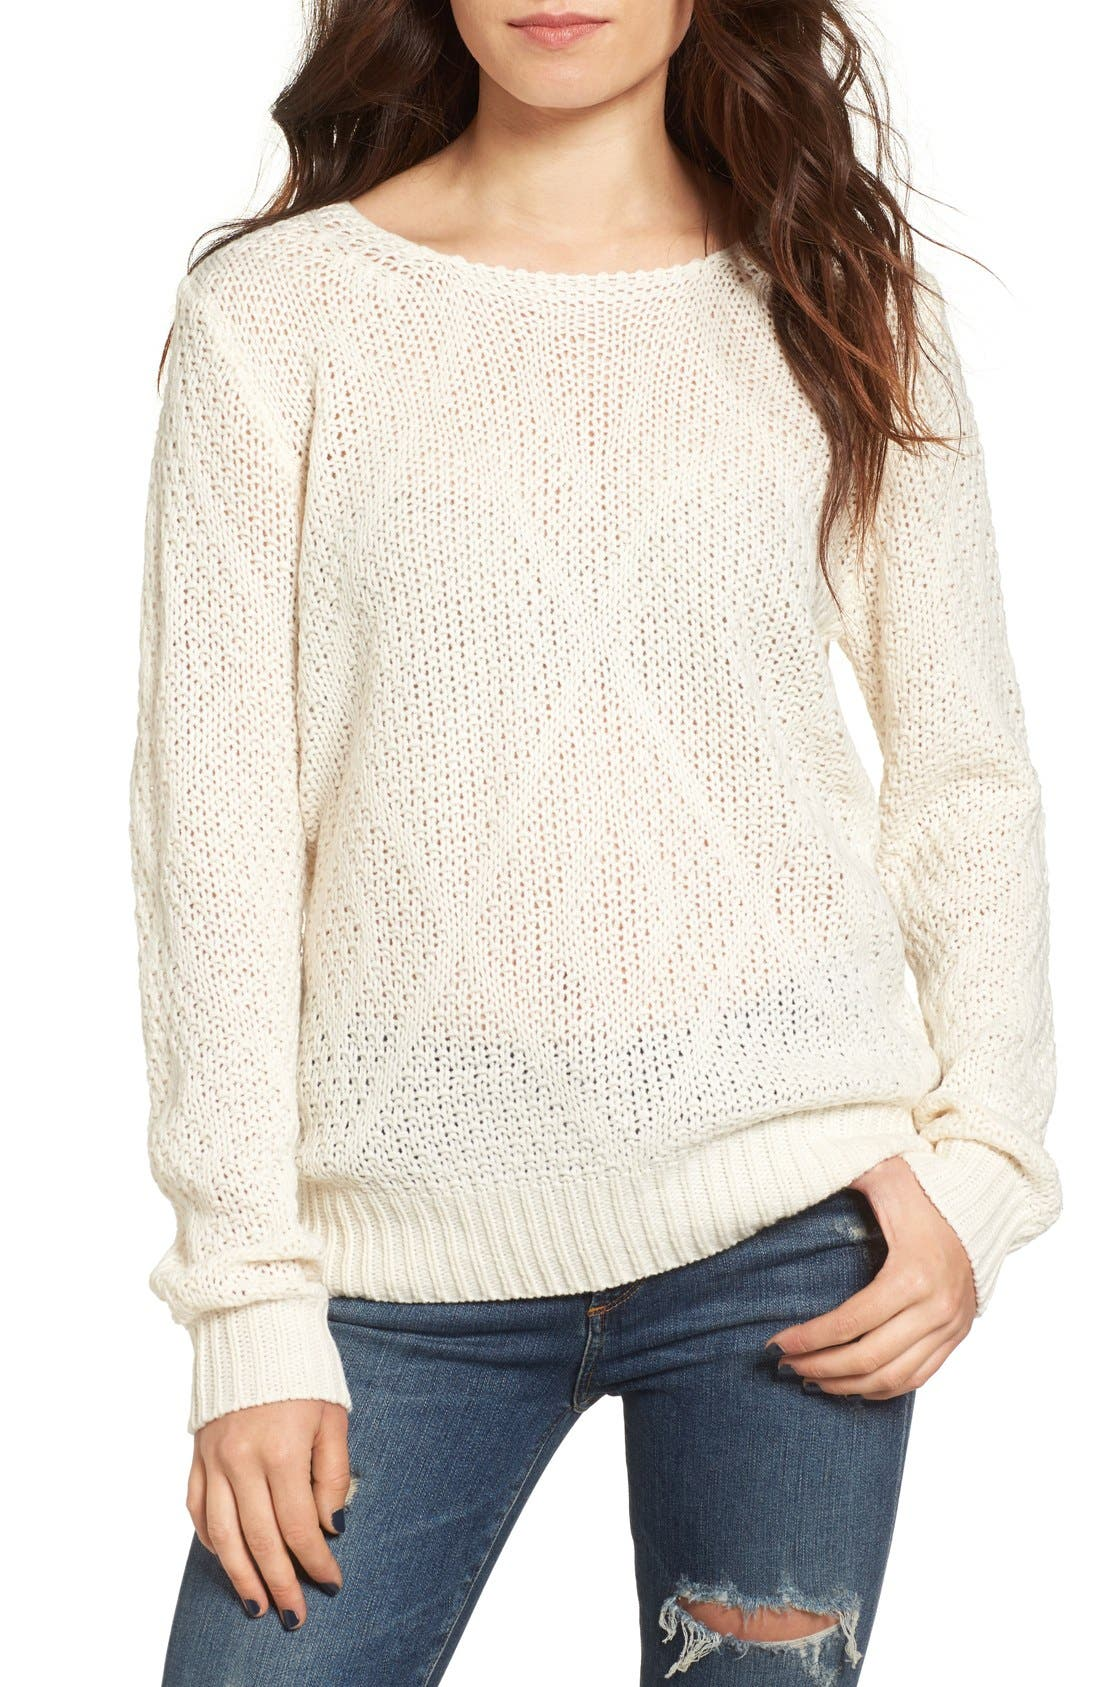 Main Image - Woven Heart Lace-Up Knit Pullover